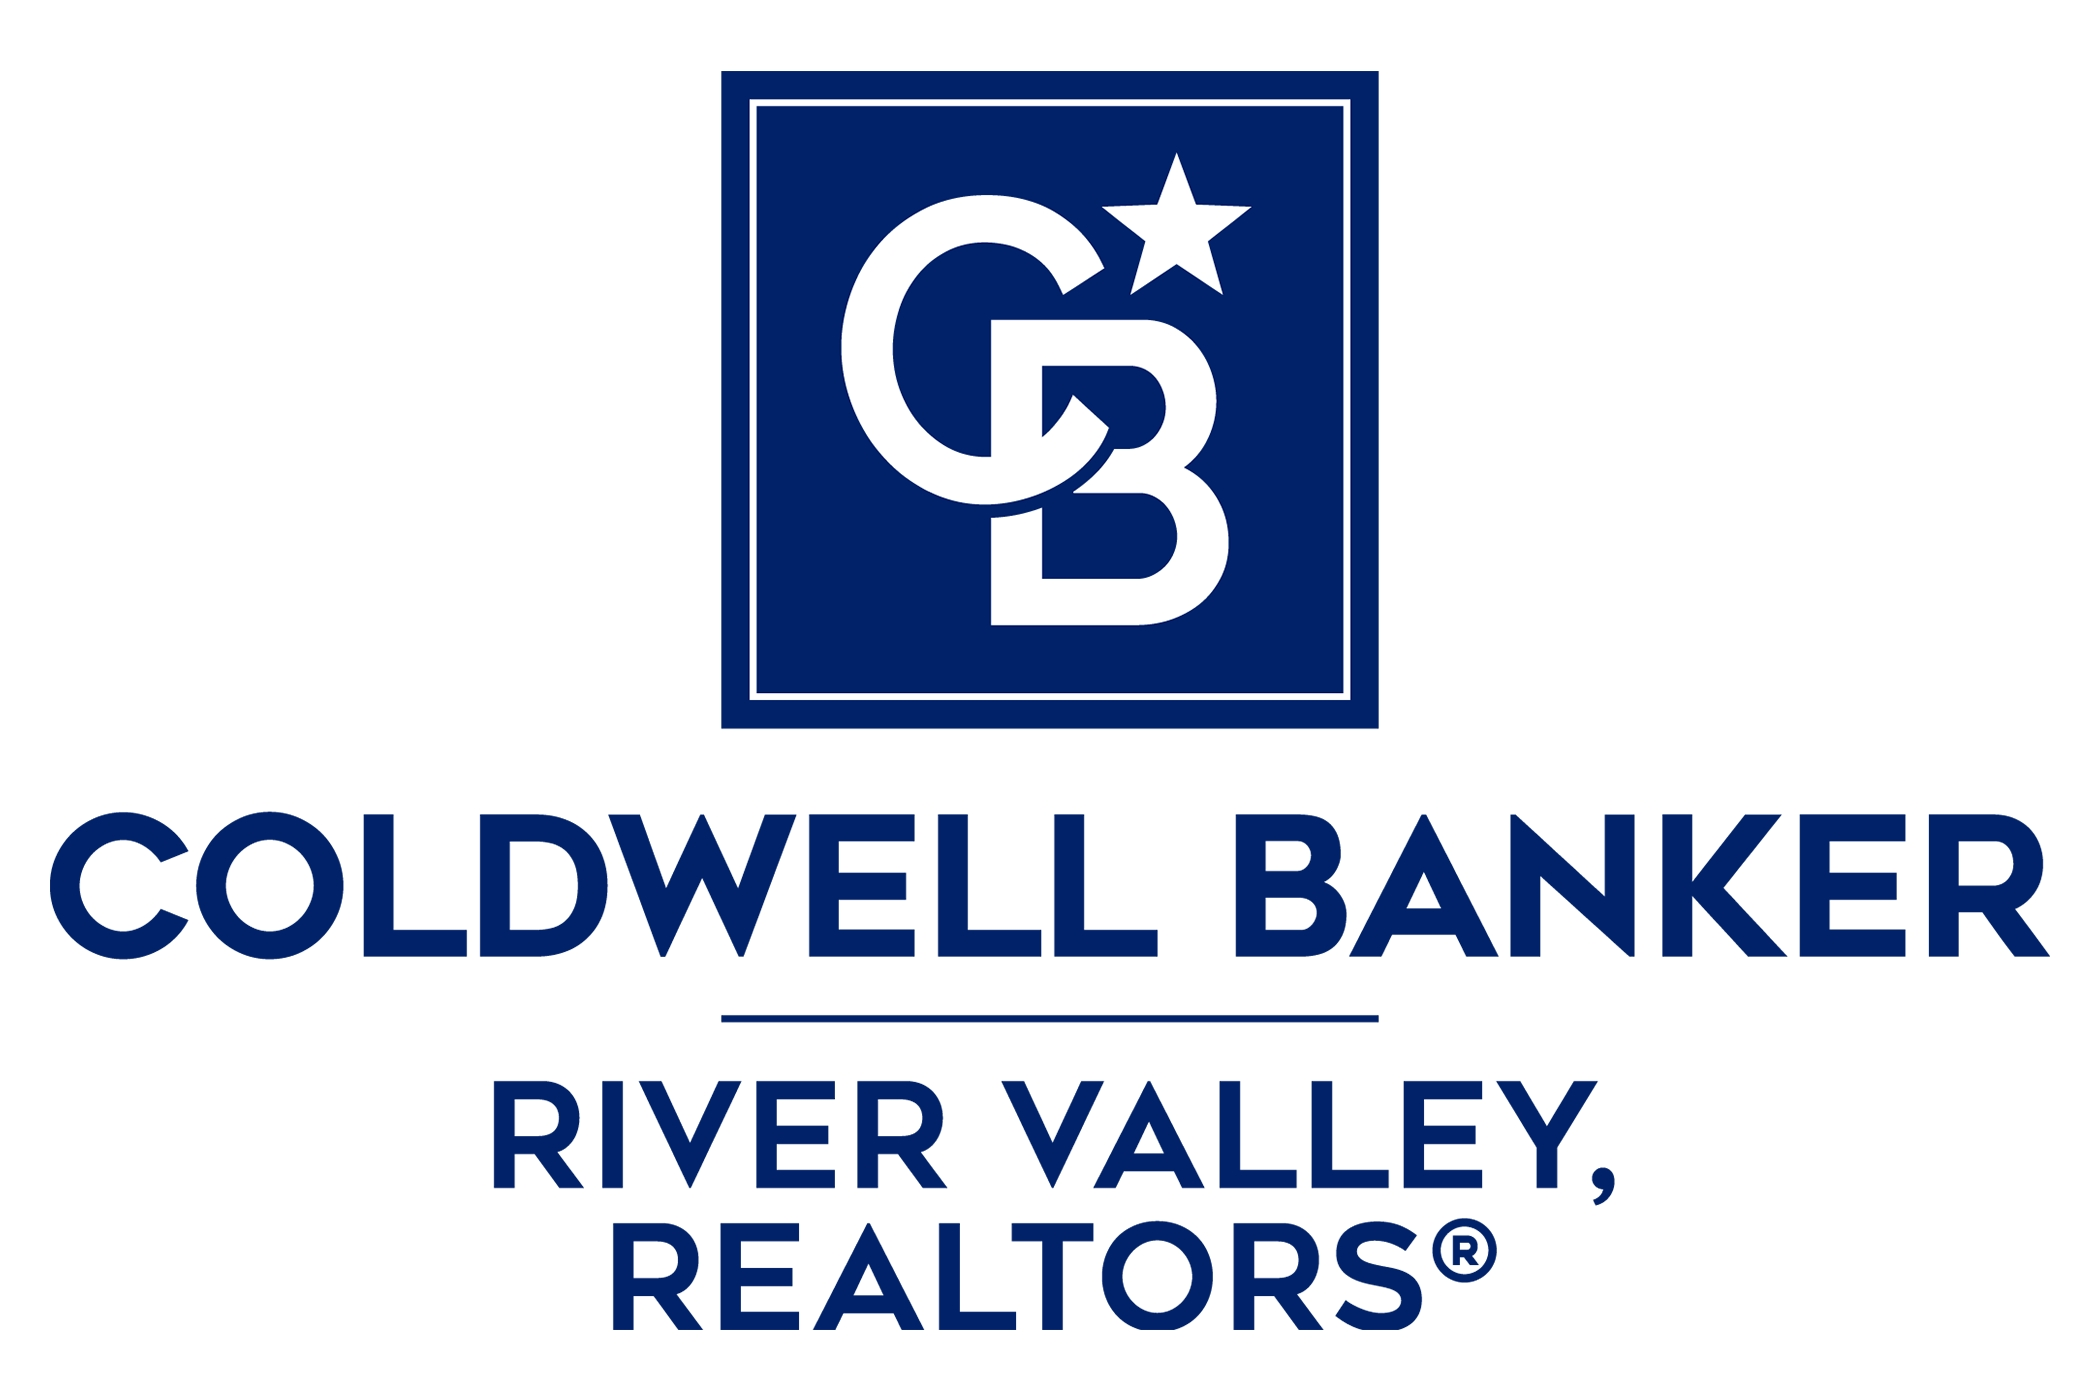 Jordan Nortman - Coldwell Banker River Valley Realtors